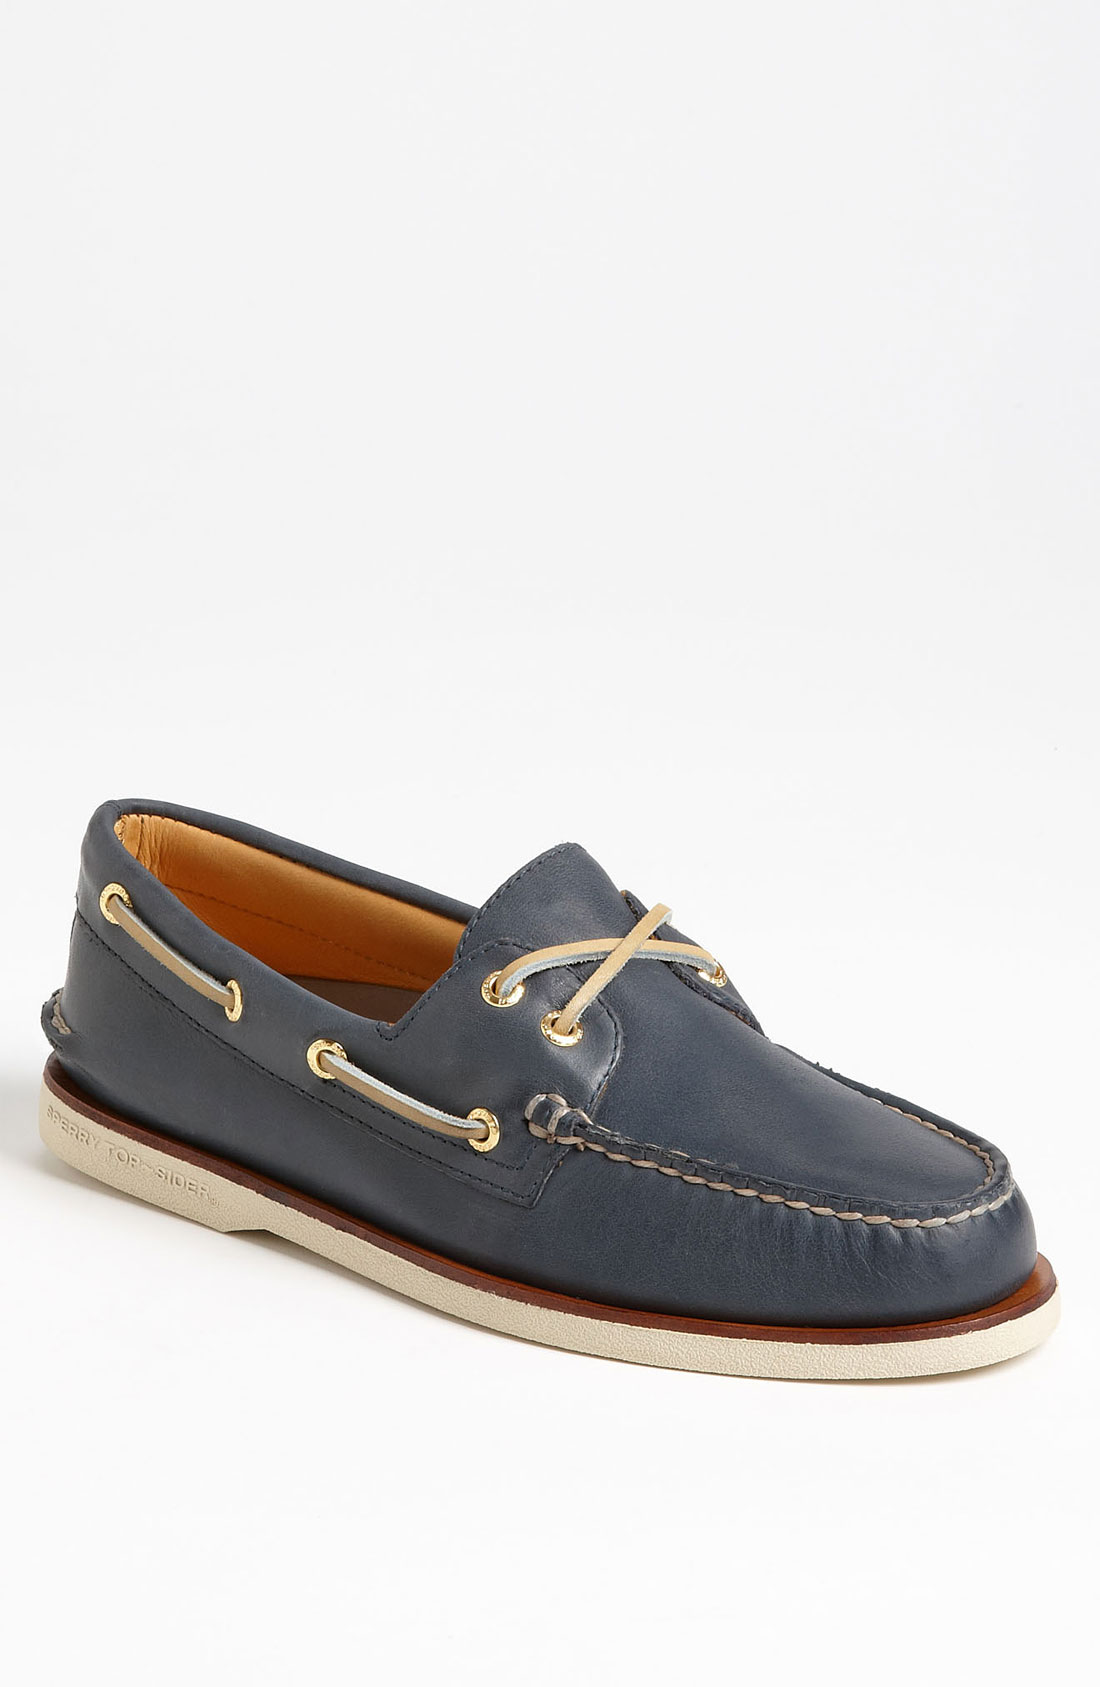 Sperry Top sider Gold Cup Authentic Original Boat Shoe In Blue For Men navy Lyst